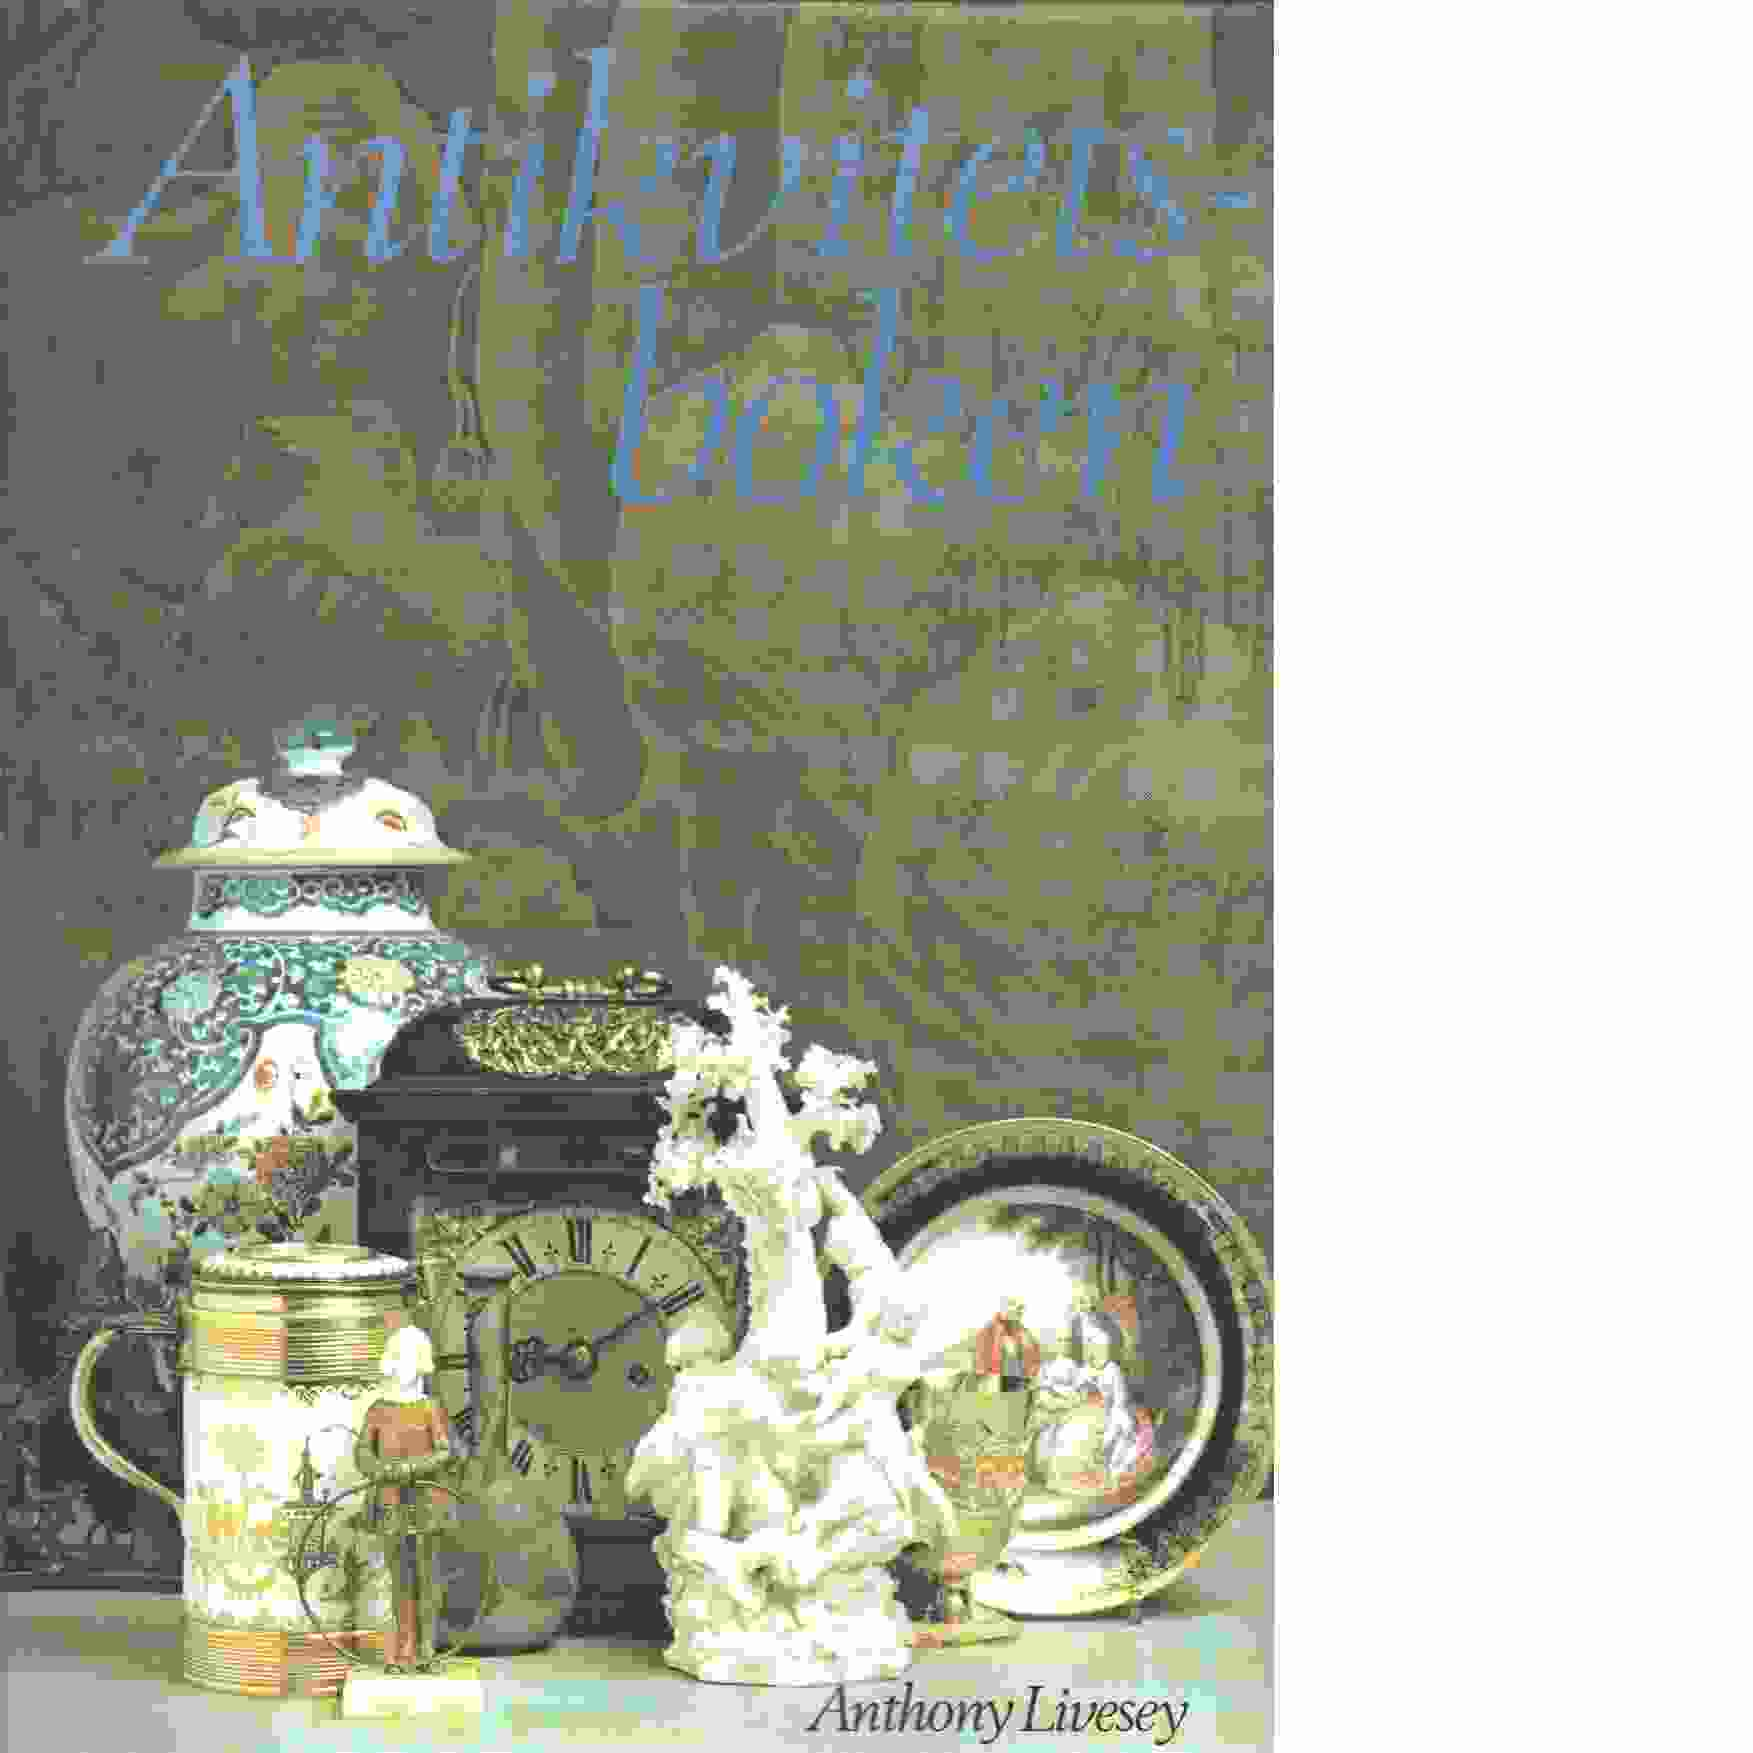 Antikvitetsboken - Livesey, Anthony